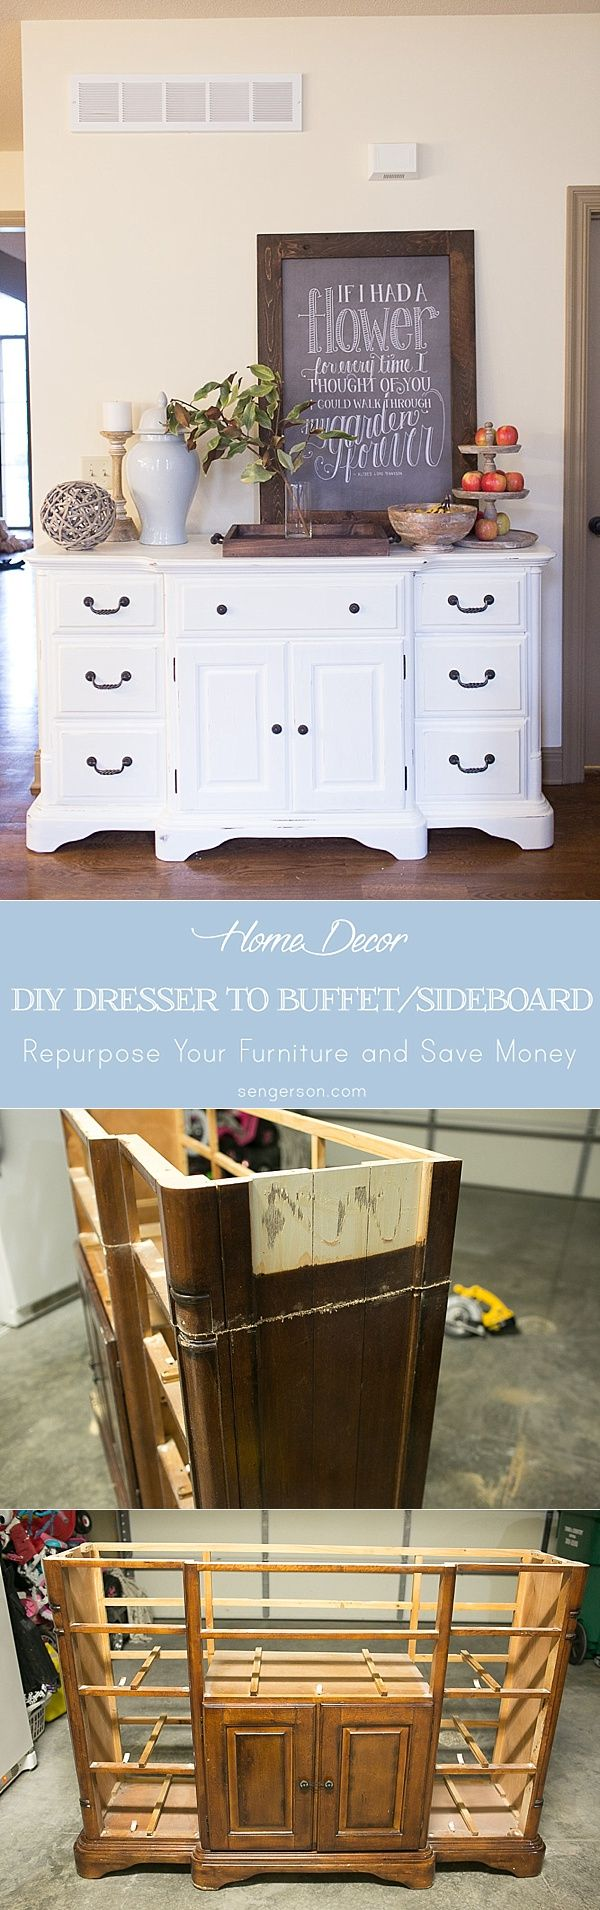 Transformation of a dresser to buffet (dresser to sideboard) using a jigsaw and chalk paint! This blogger made her dresser a little shorter to fit her space. The spring decor is absolutely adorable - www.sengerson.com.